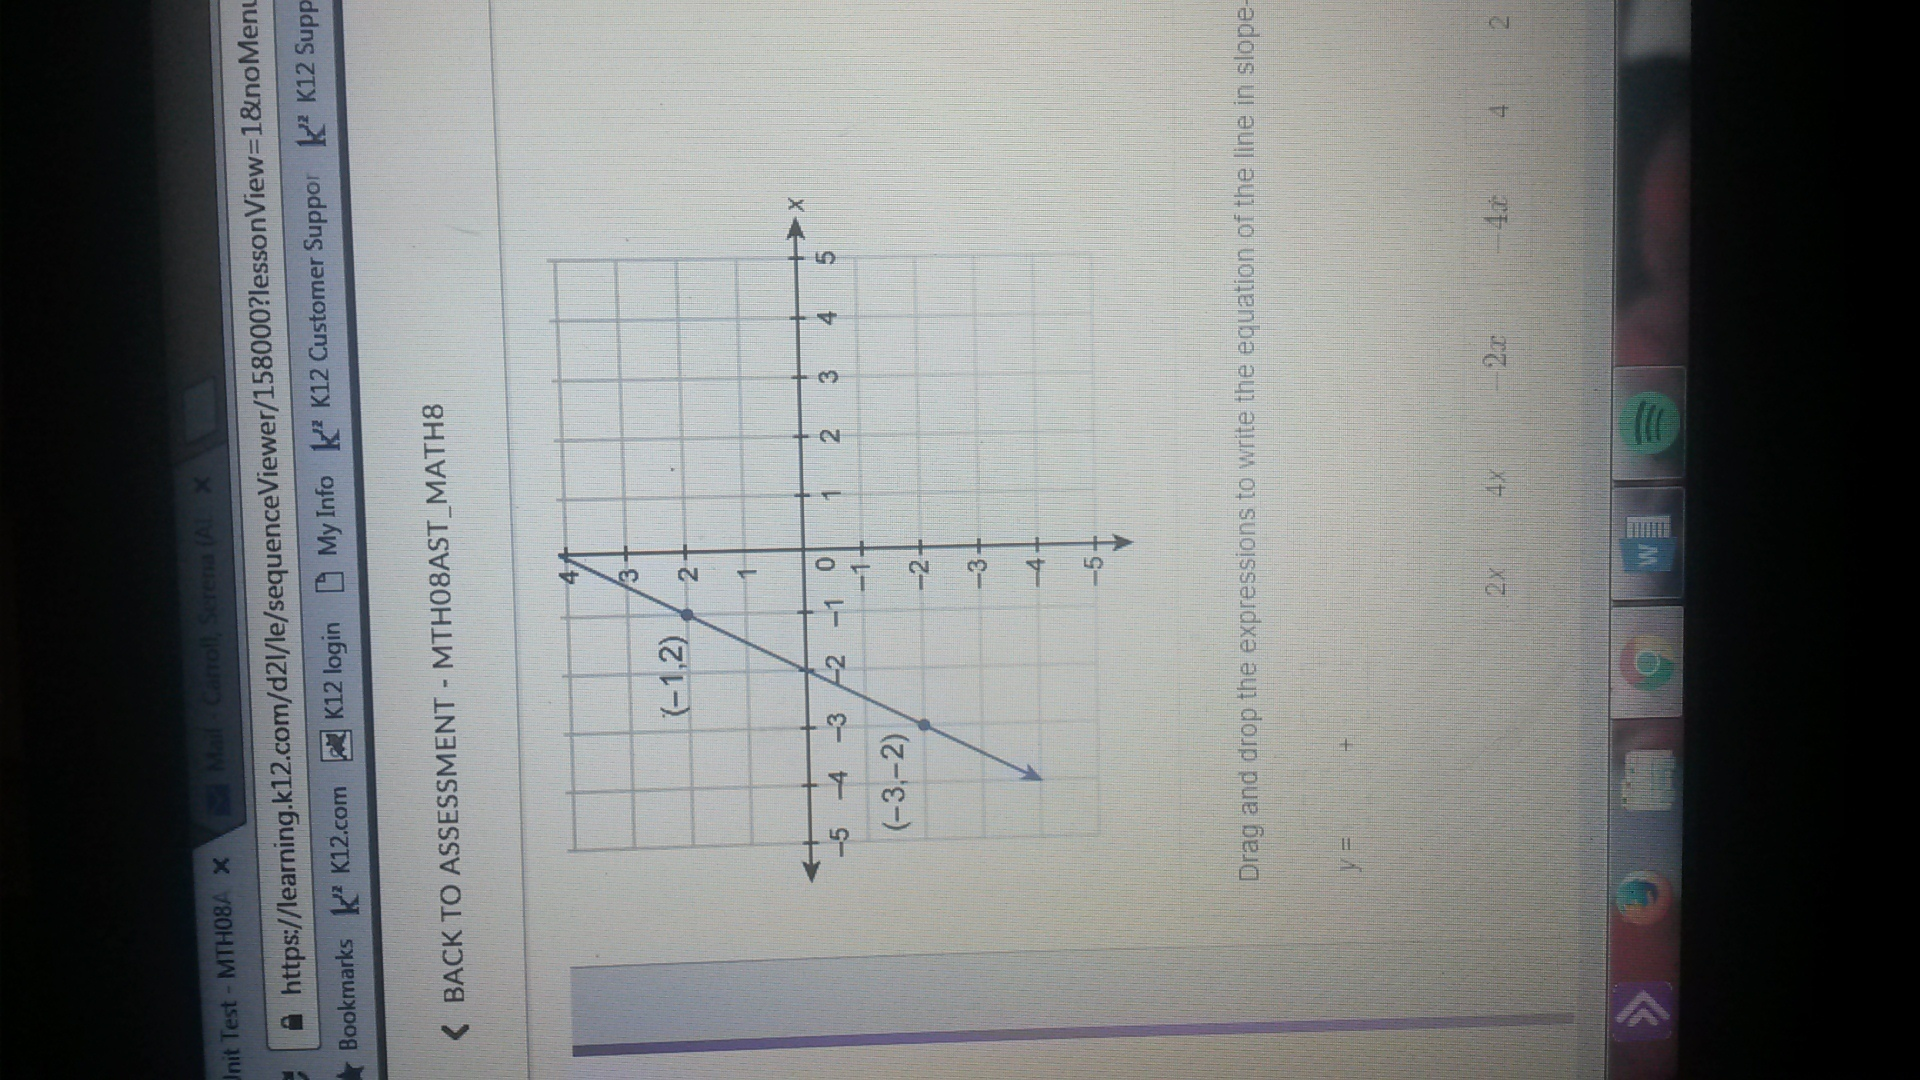 What Is The Equation Of The Line Shown In The Graph Write